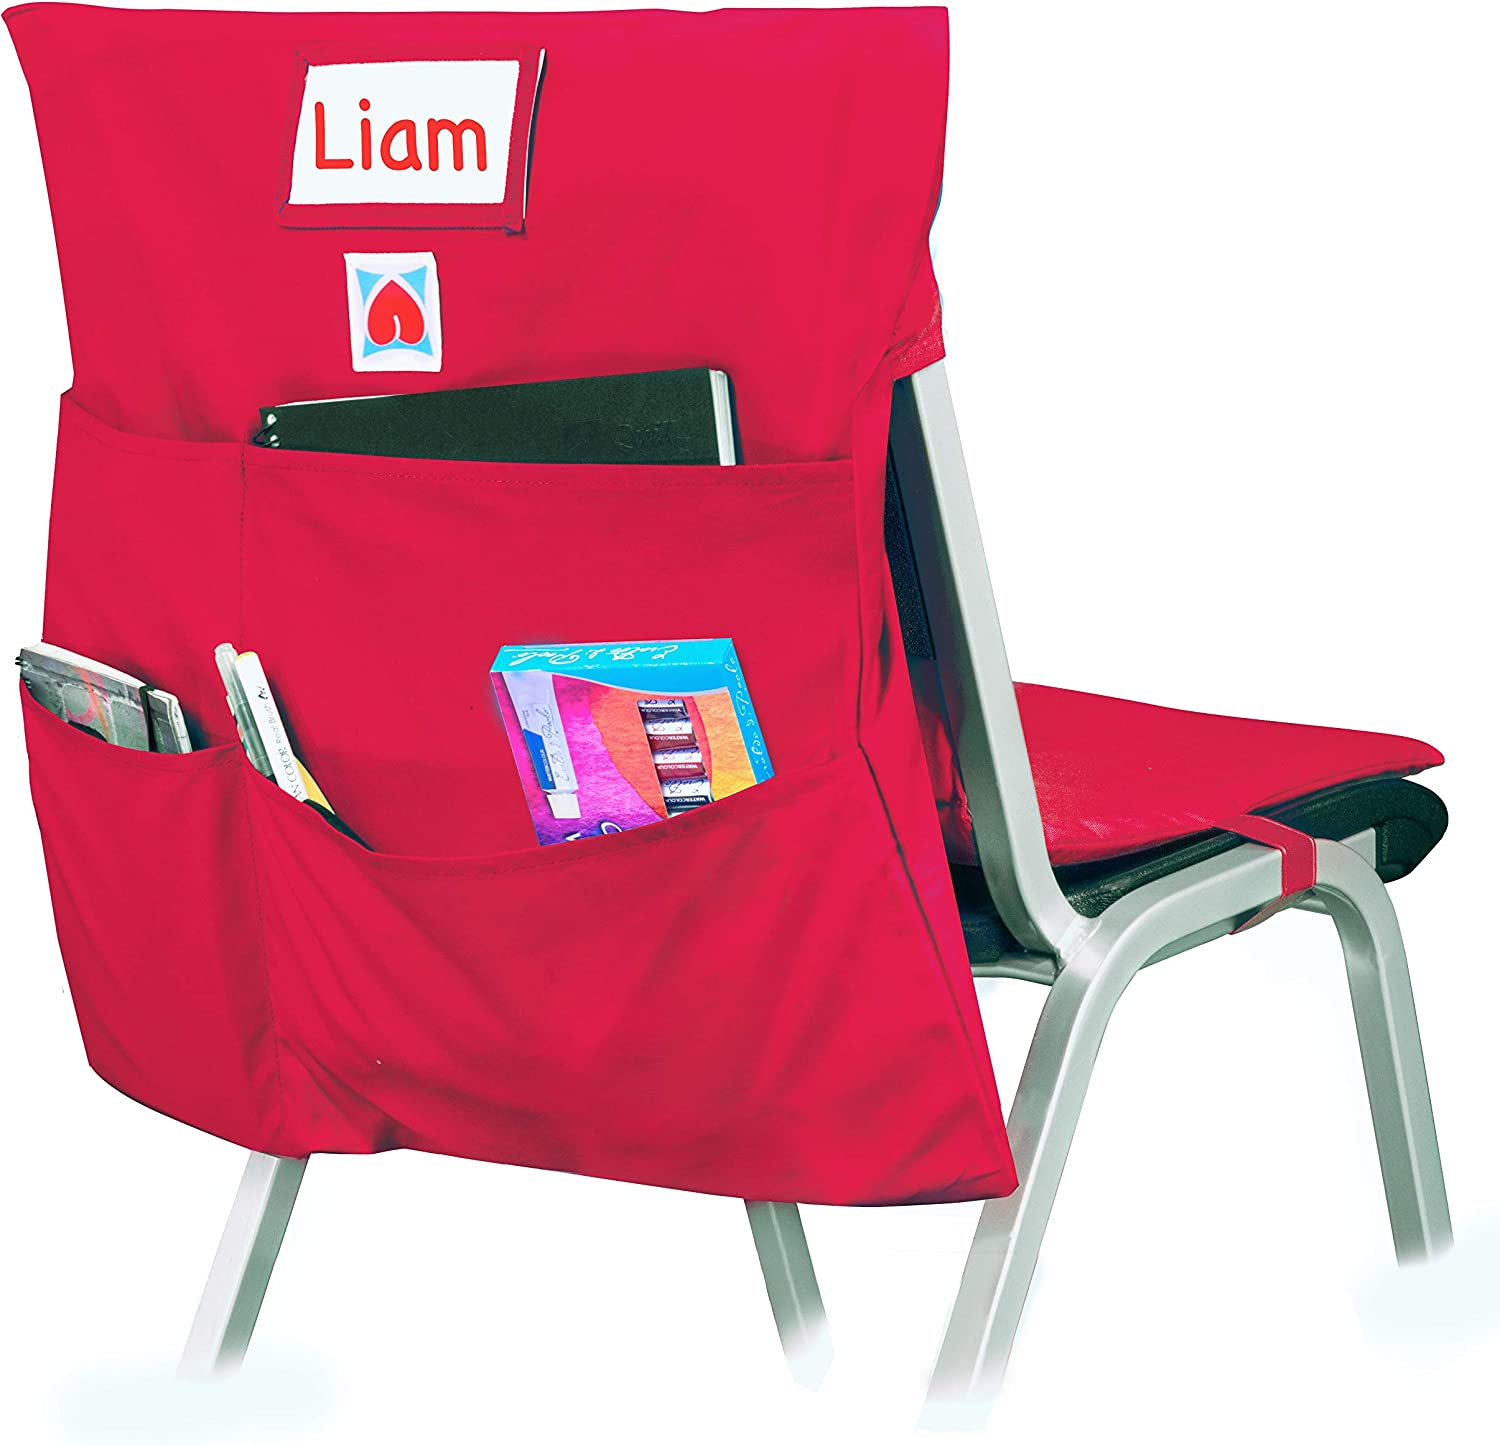 COMFY BUM Chair Bag, Cushioned Chair Pockets for Classroom, chairback seat Sacks, Back to School, Students, Kids, School, Teachers, Preschool, Kindergarten, Homework, College, Office (Red, Large)